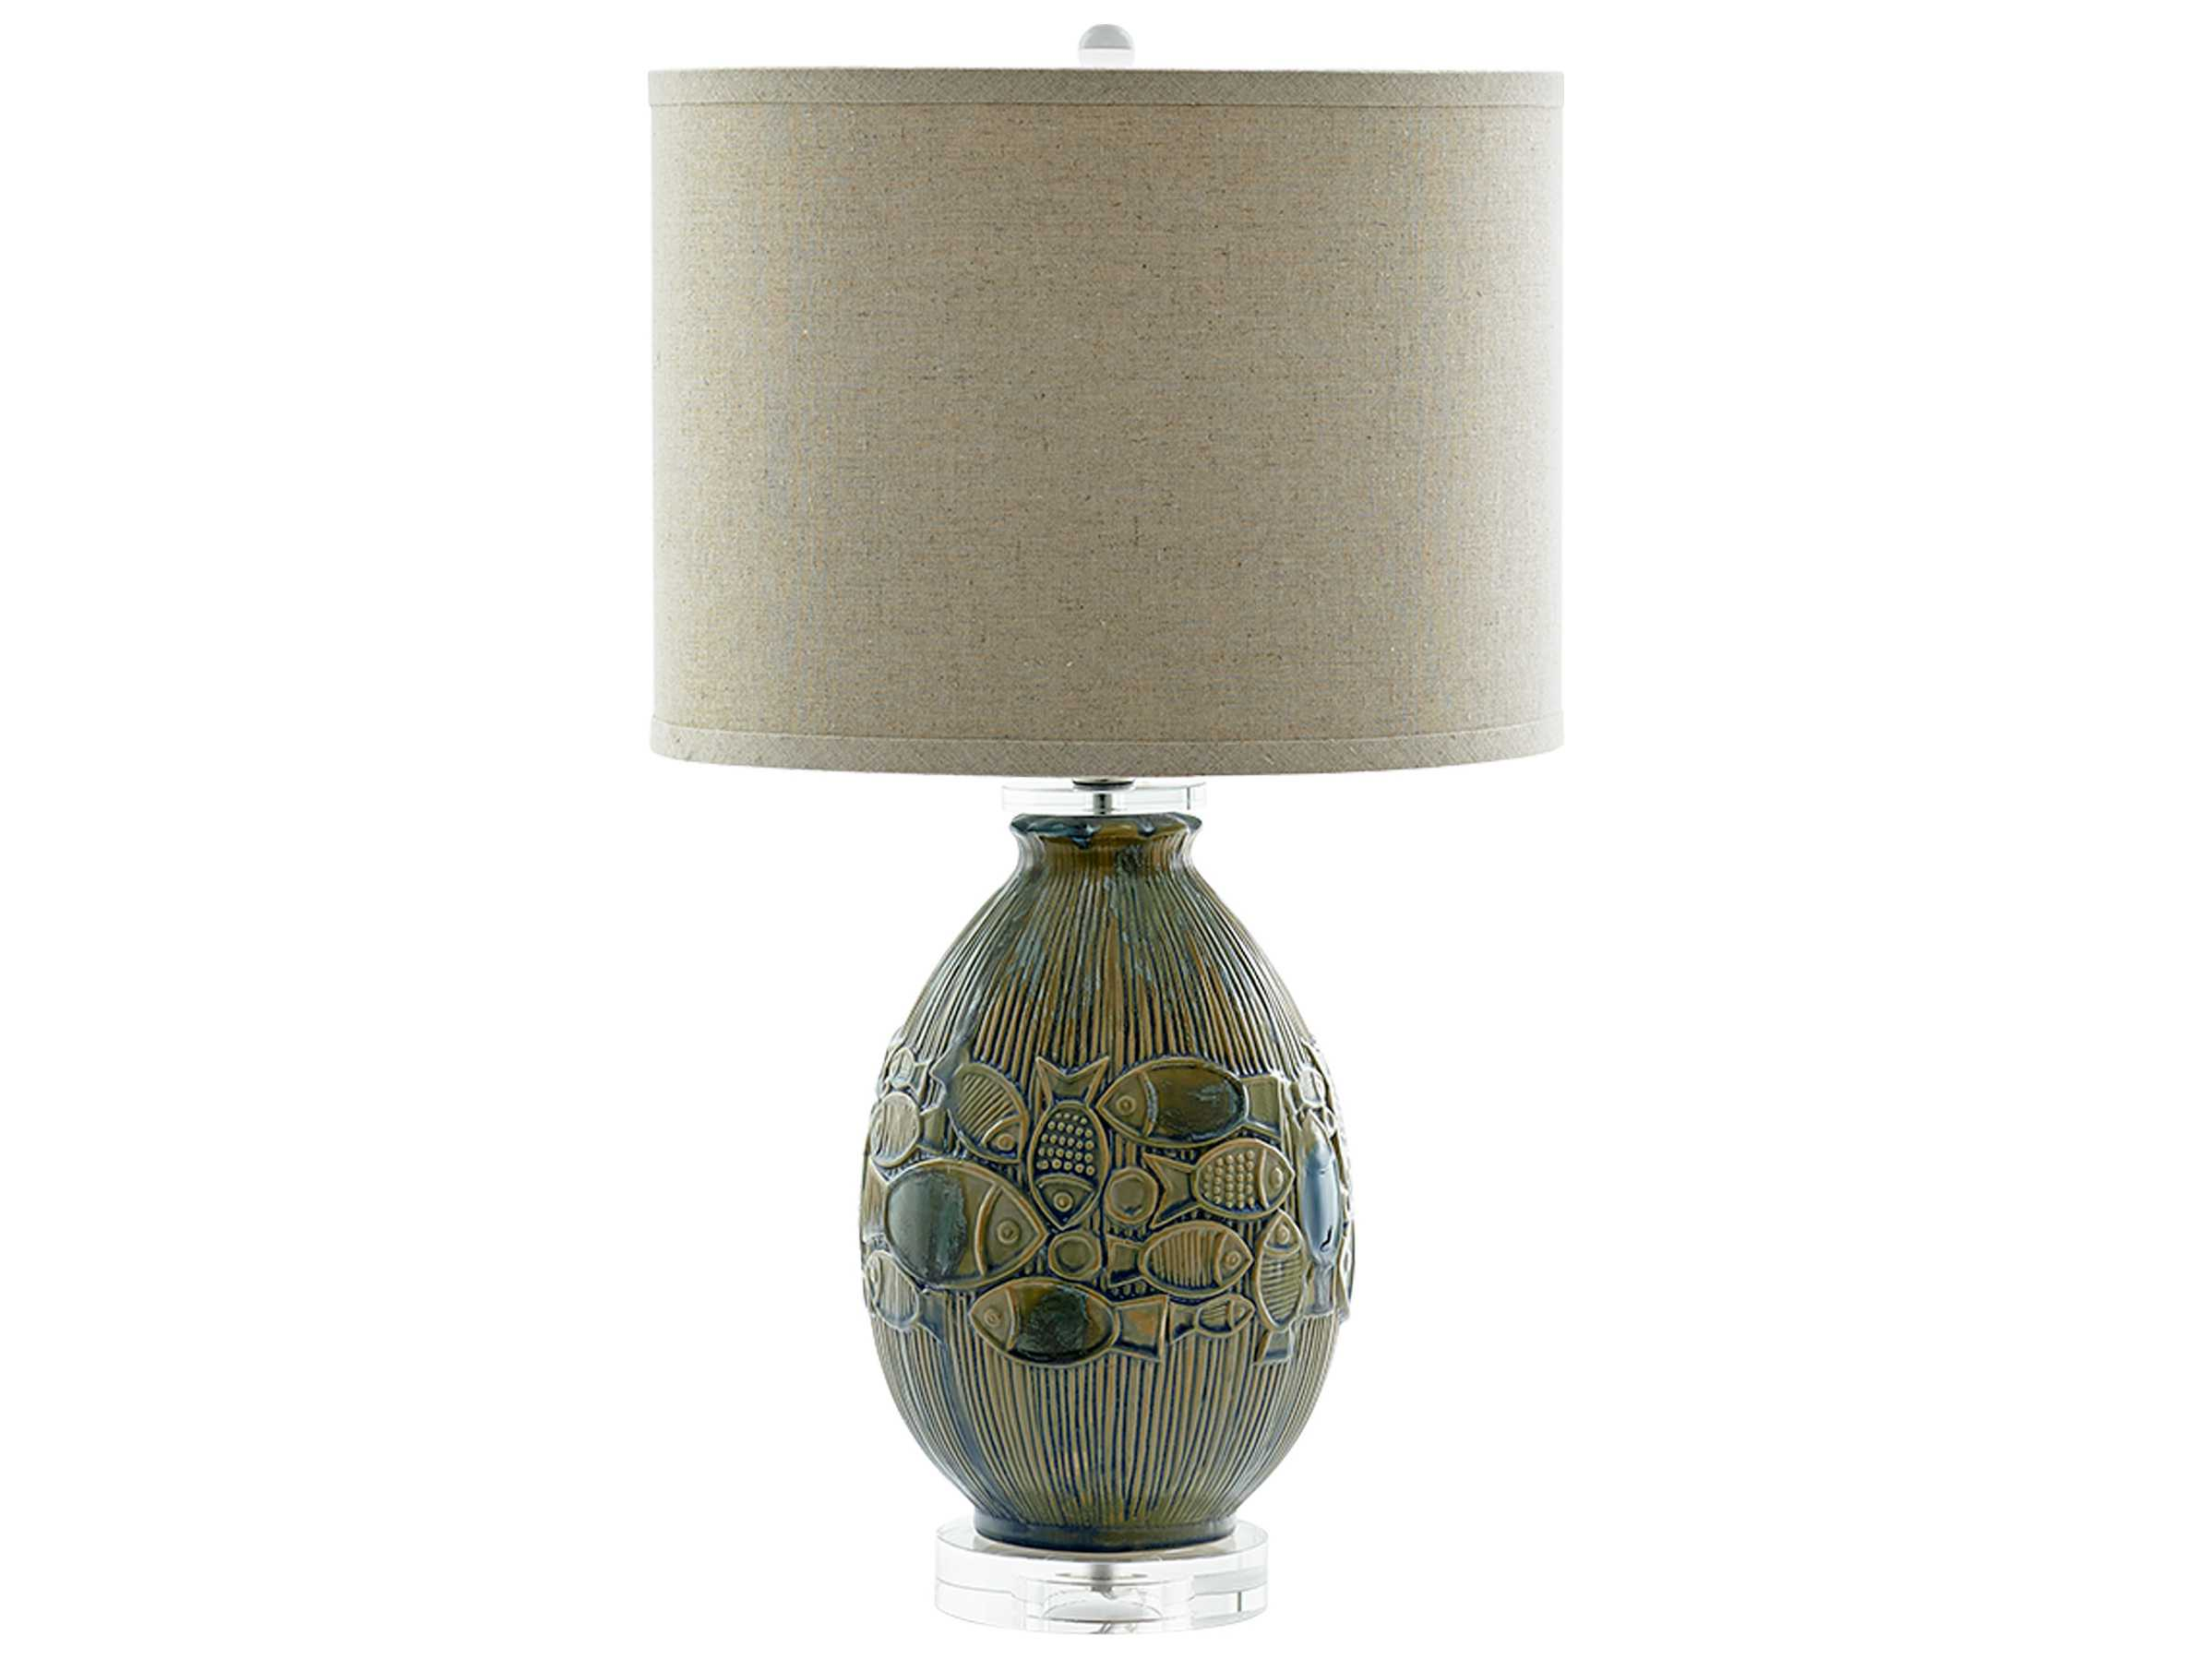 Cyan design piscine blue table lamp c307737 for Piscine blue design